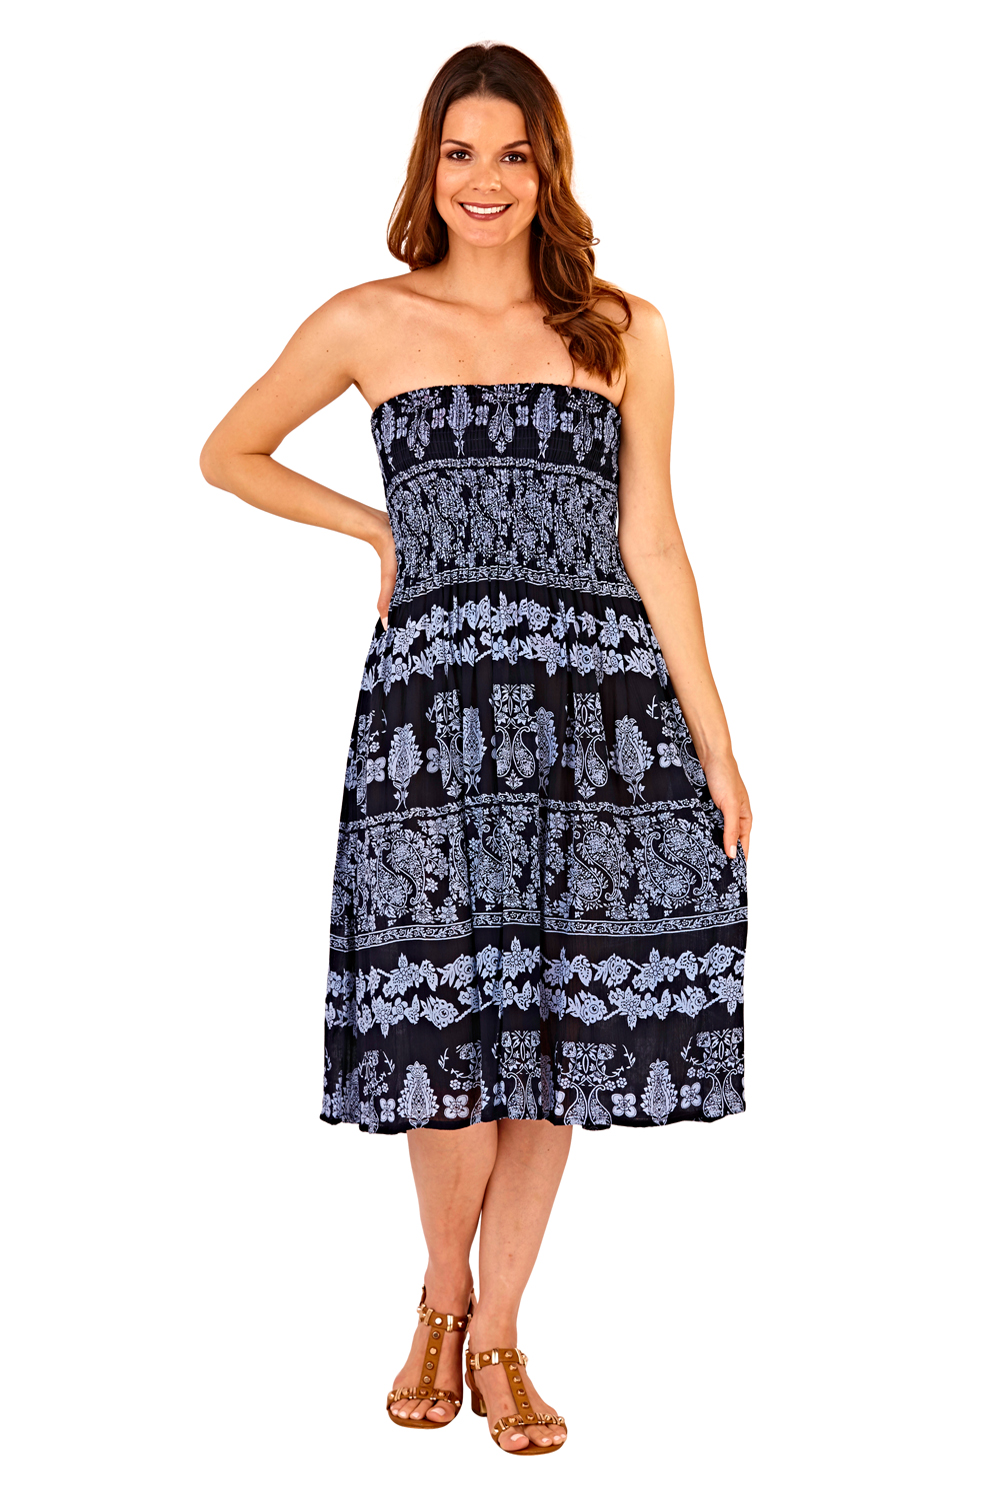 Pistachio-Womens-Patterned-3-In-1-Dresses-Ladies-New-Cotton-Summer-Beach-Skirts thumbnail 13